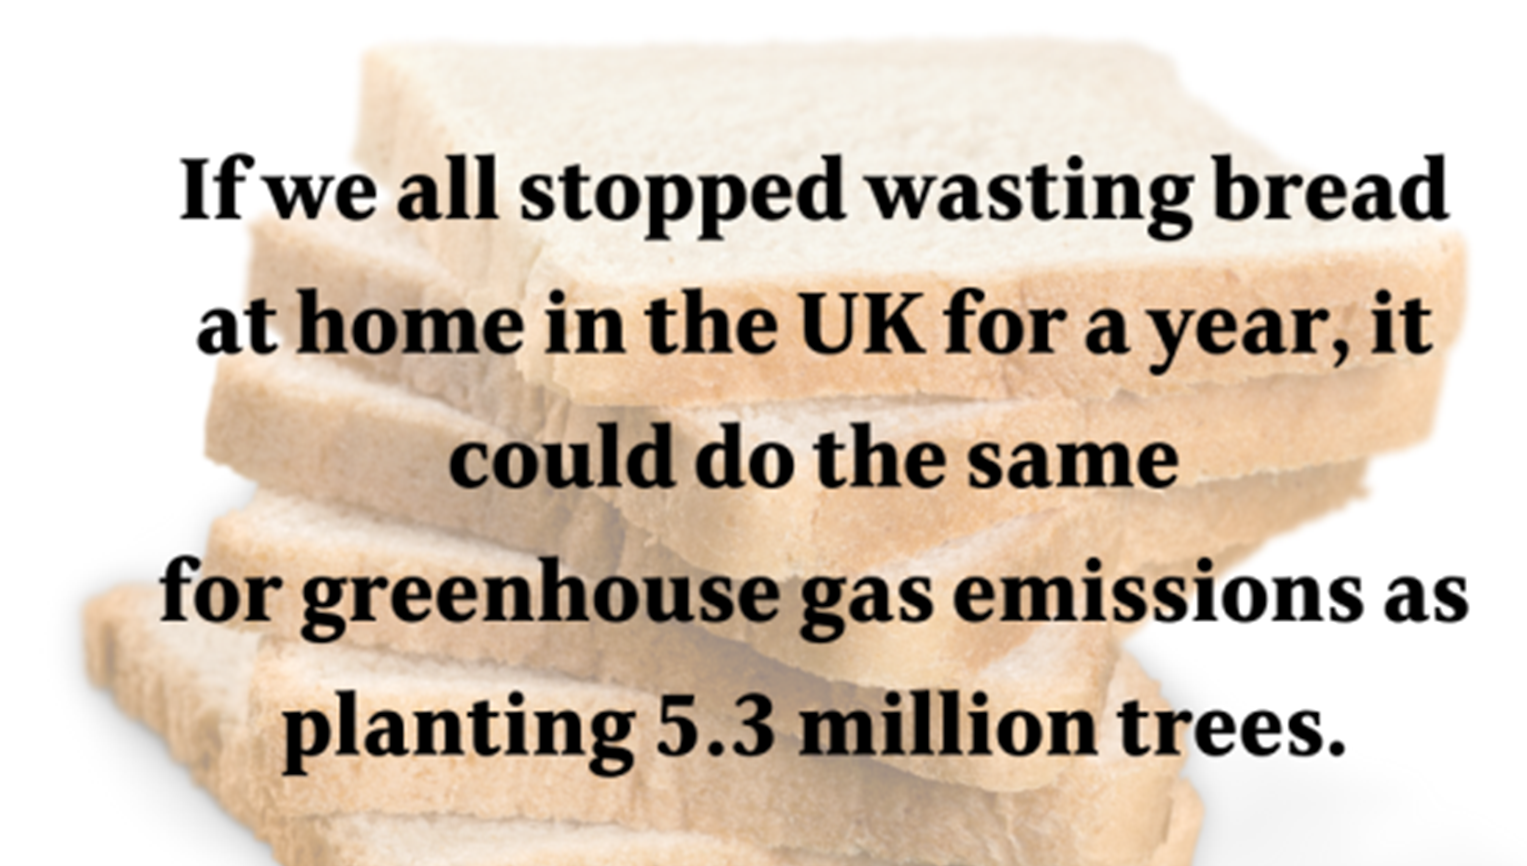 Infographic about the impact of wasting bread